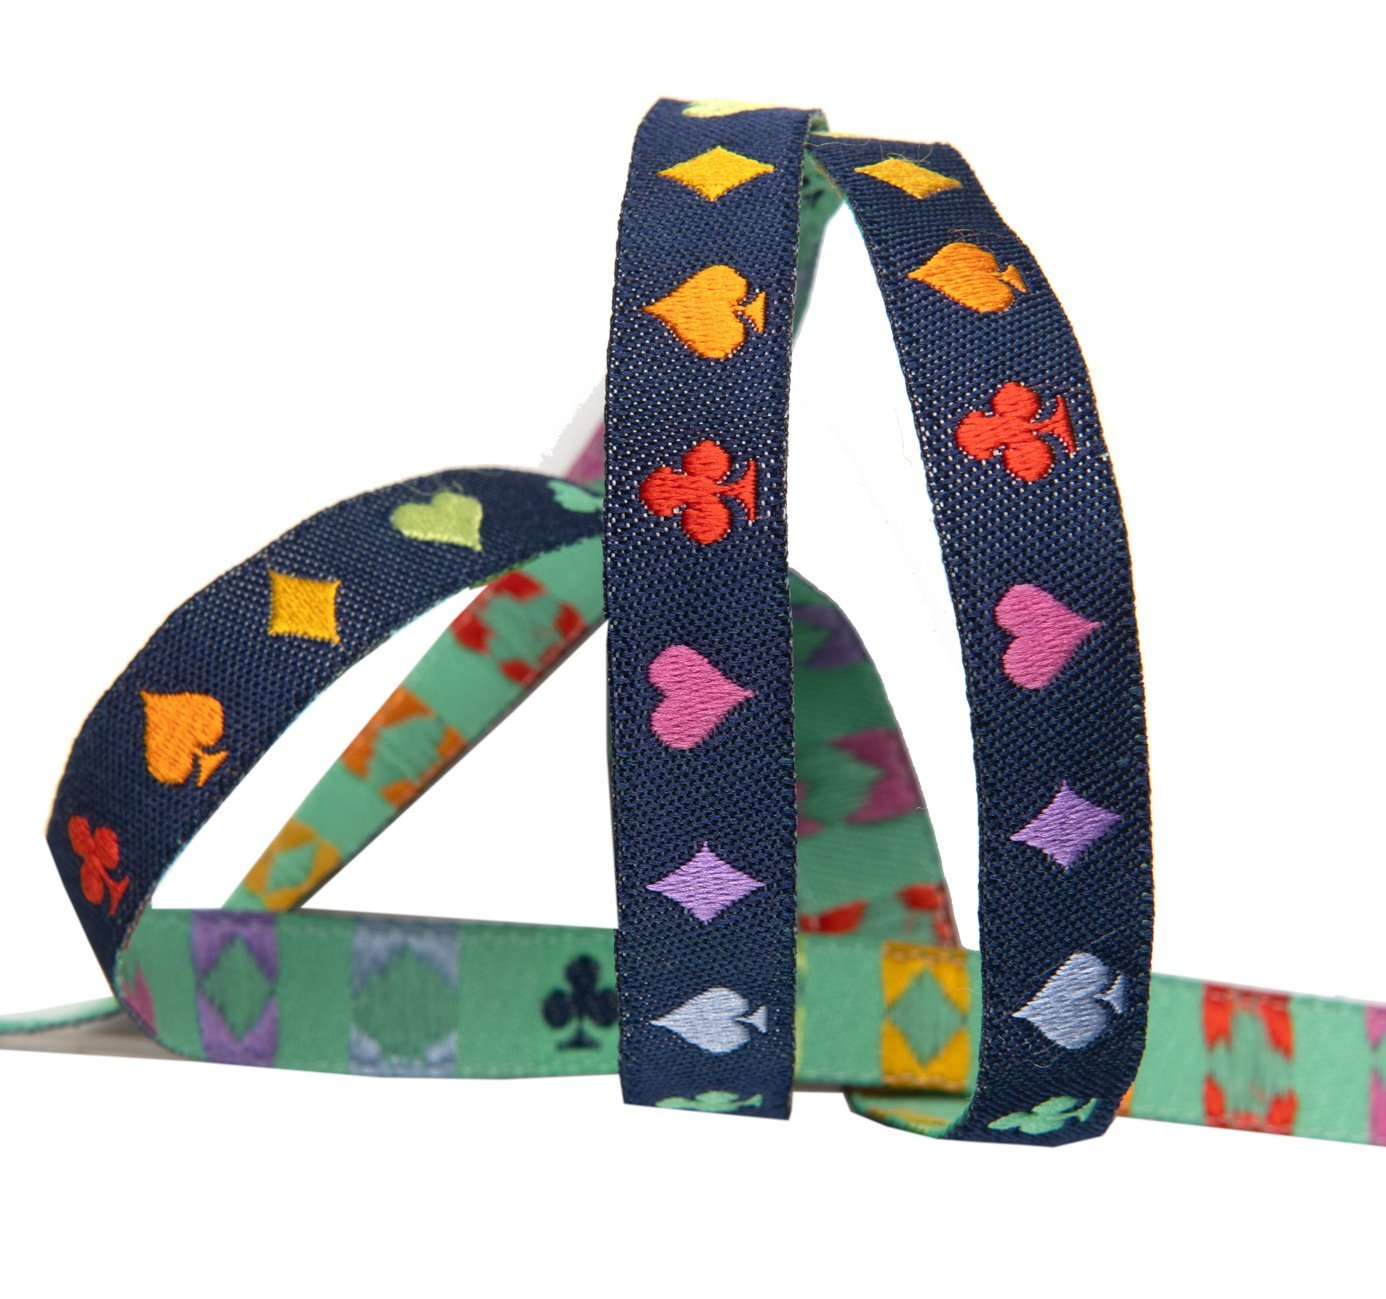 Renaissance Ribbons -Tula Pink Curiouser - Suited and Booted Navy-3/8